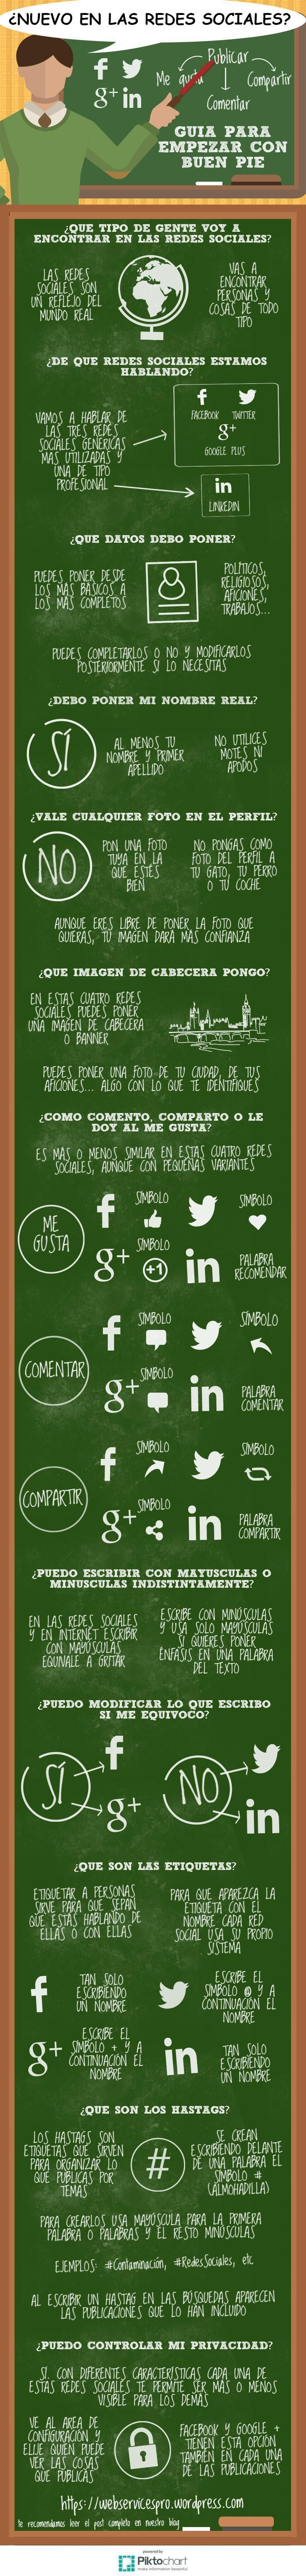 Guía Para Comenzar Con Buen Pie En Las Redes Sociales Marketing Digital Social Media Online Marketing Social Media Social Media Infographic